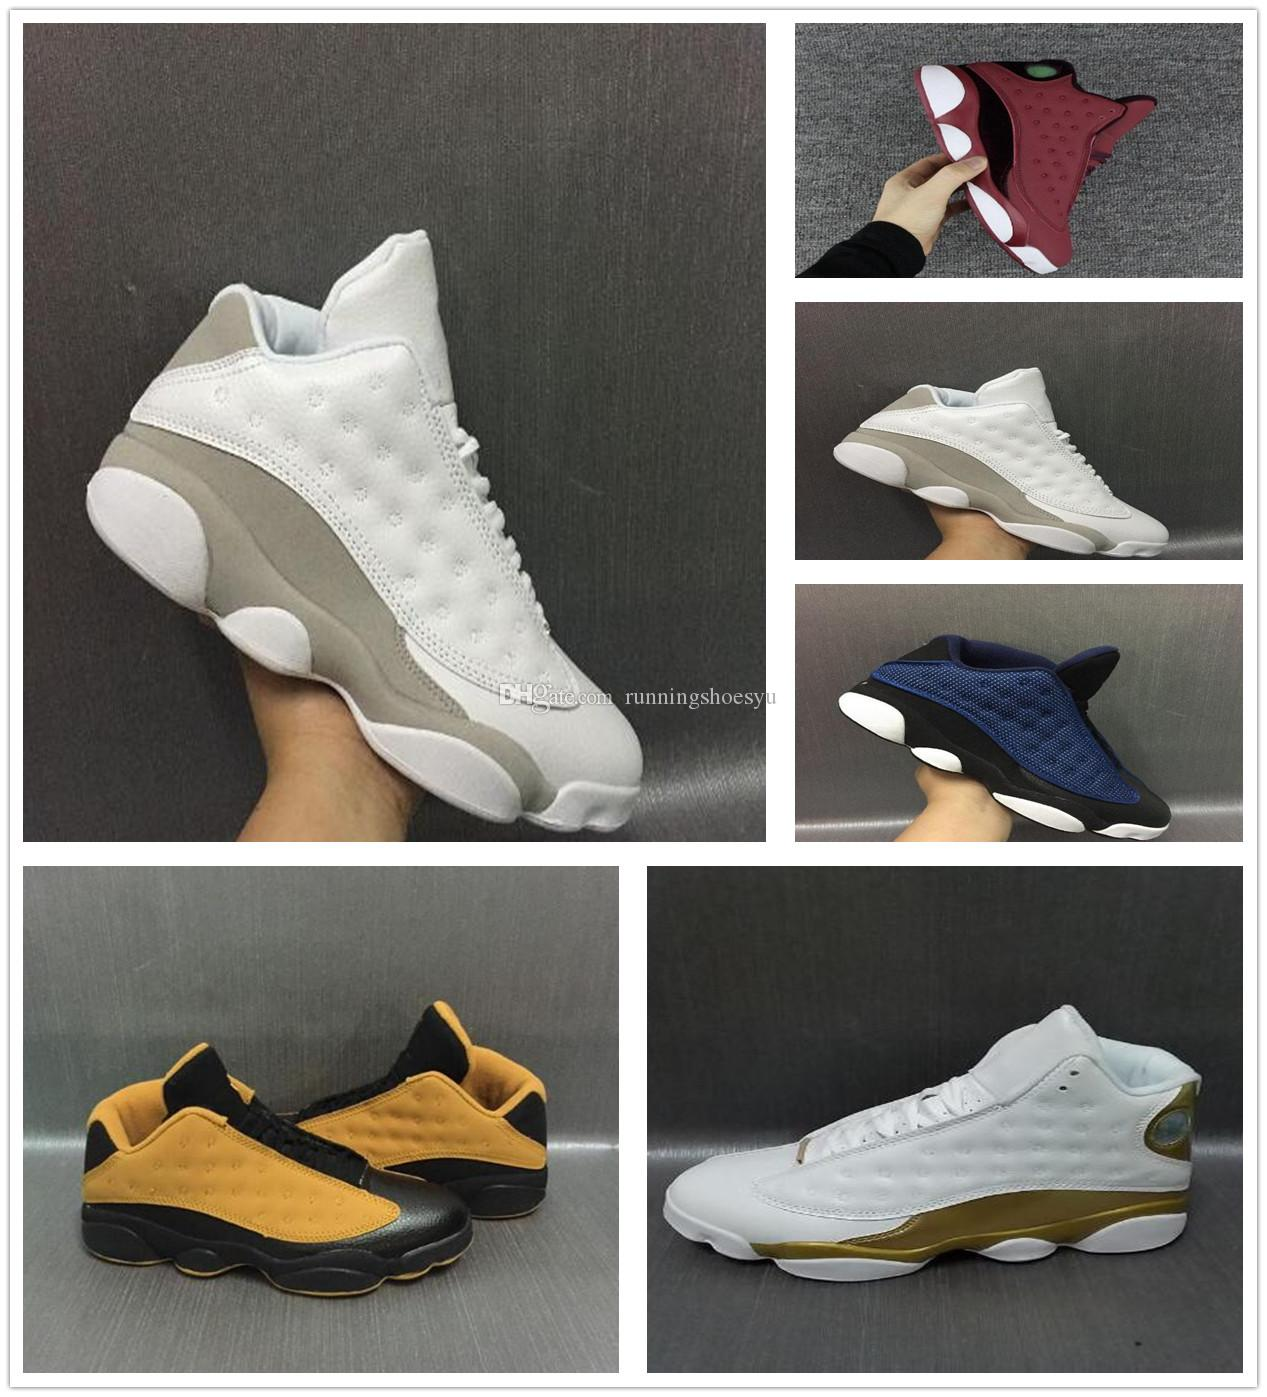 8d9724737f4b00 Cheap 2018 High Quality Shoes 13 XIII 13s Men Basketball Shoes Women ...